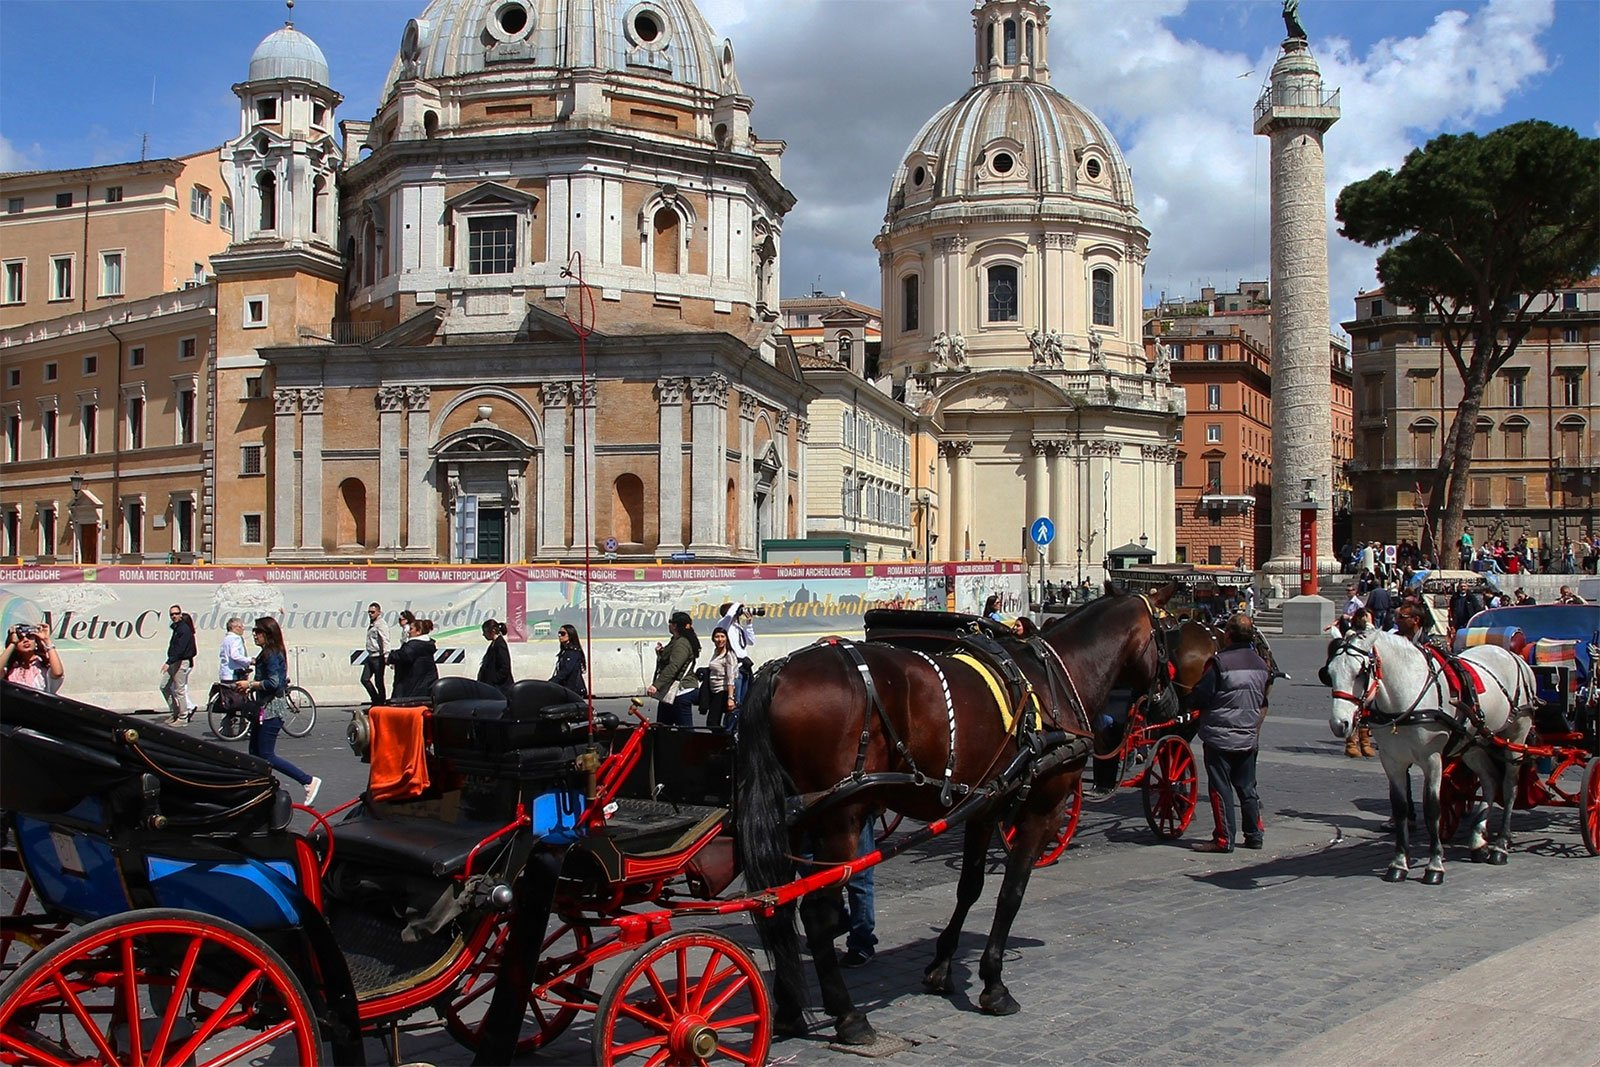 How to ride in a horse carriage in Rome